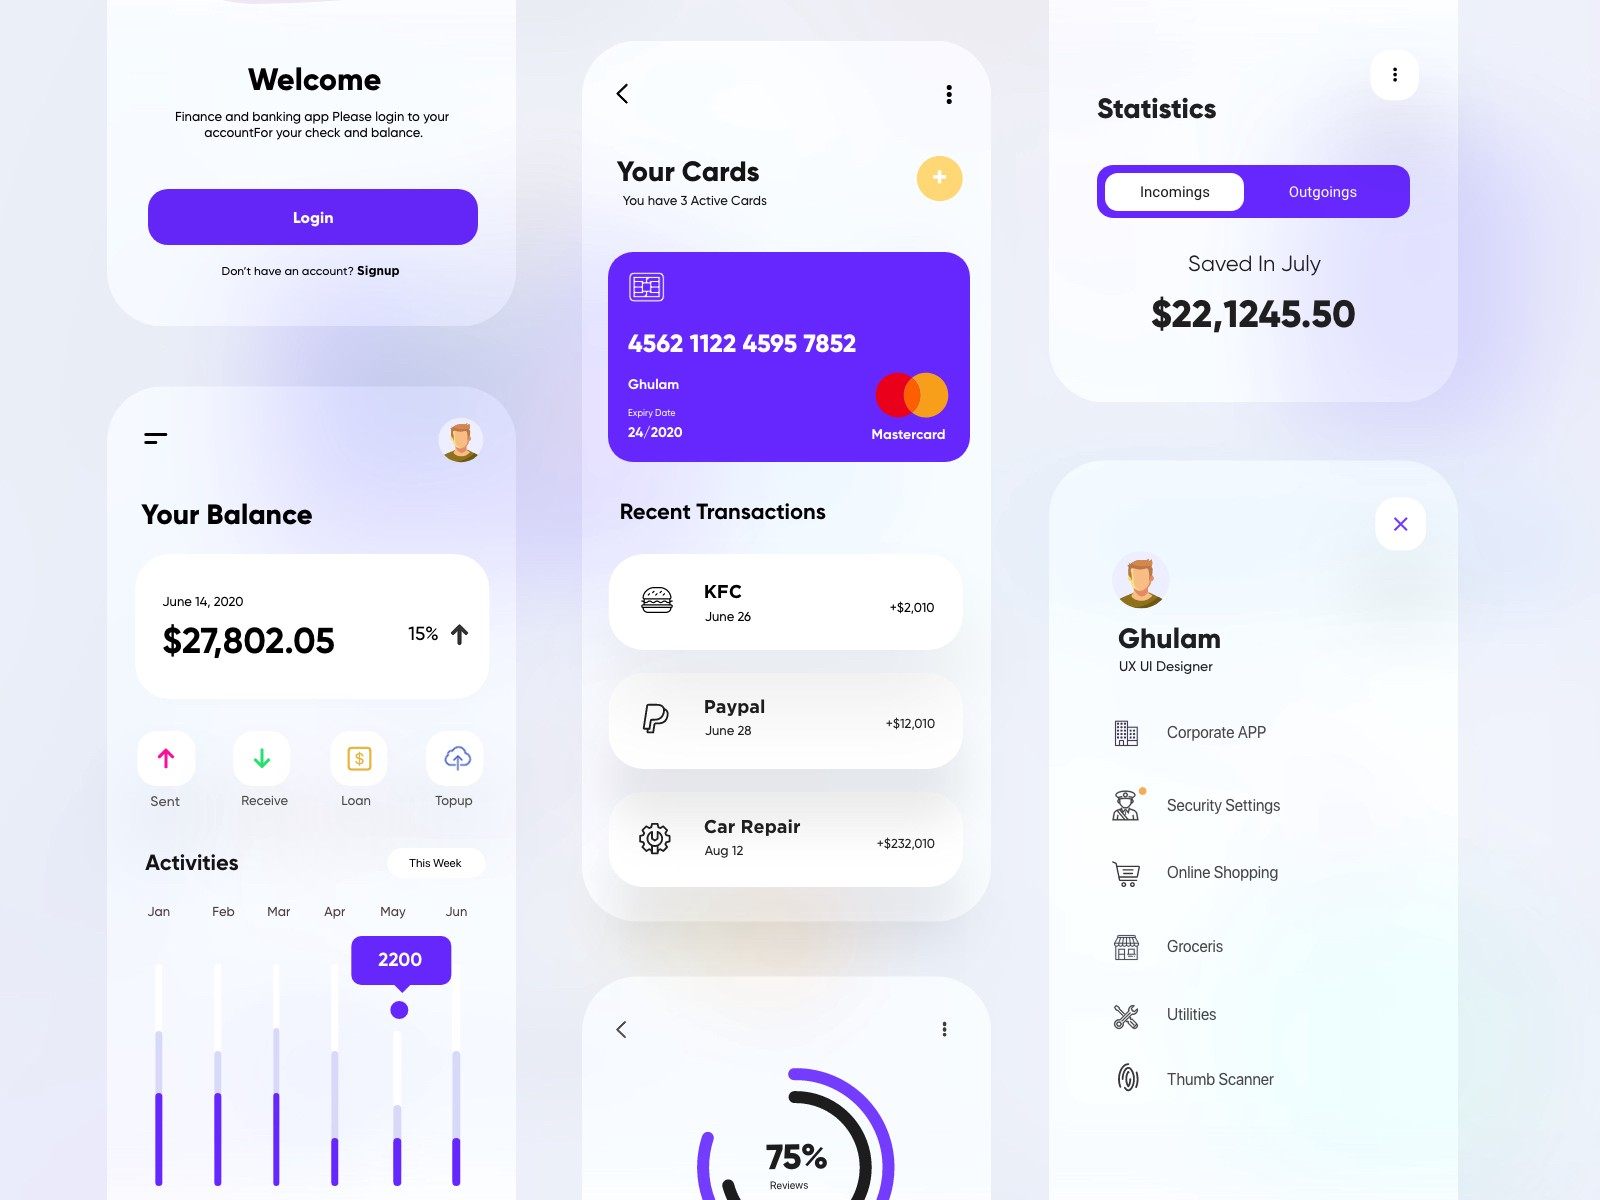 Banking and Finance App UX-UI Design